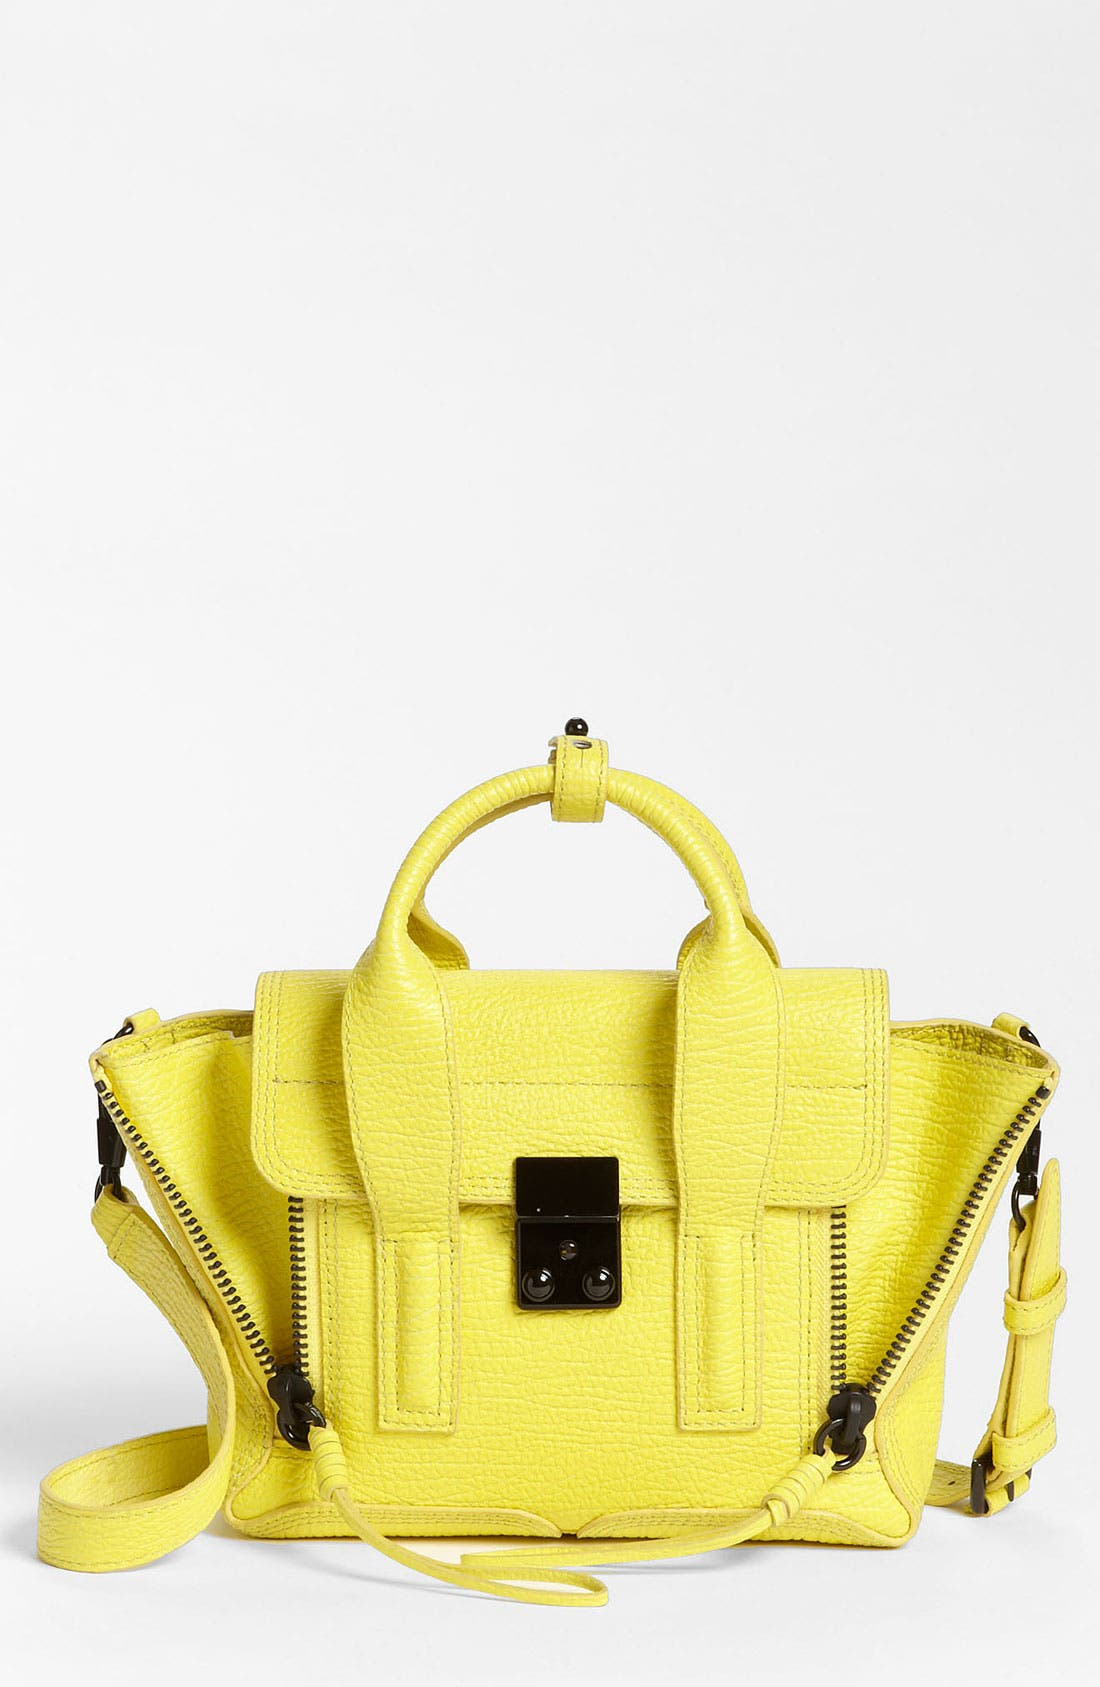 Main Image - 3.1 Phillip Lim 'Mini Pashli' Leather Satchel